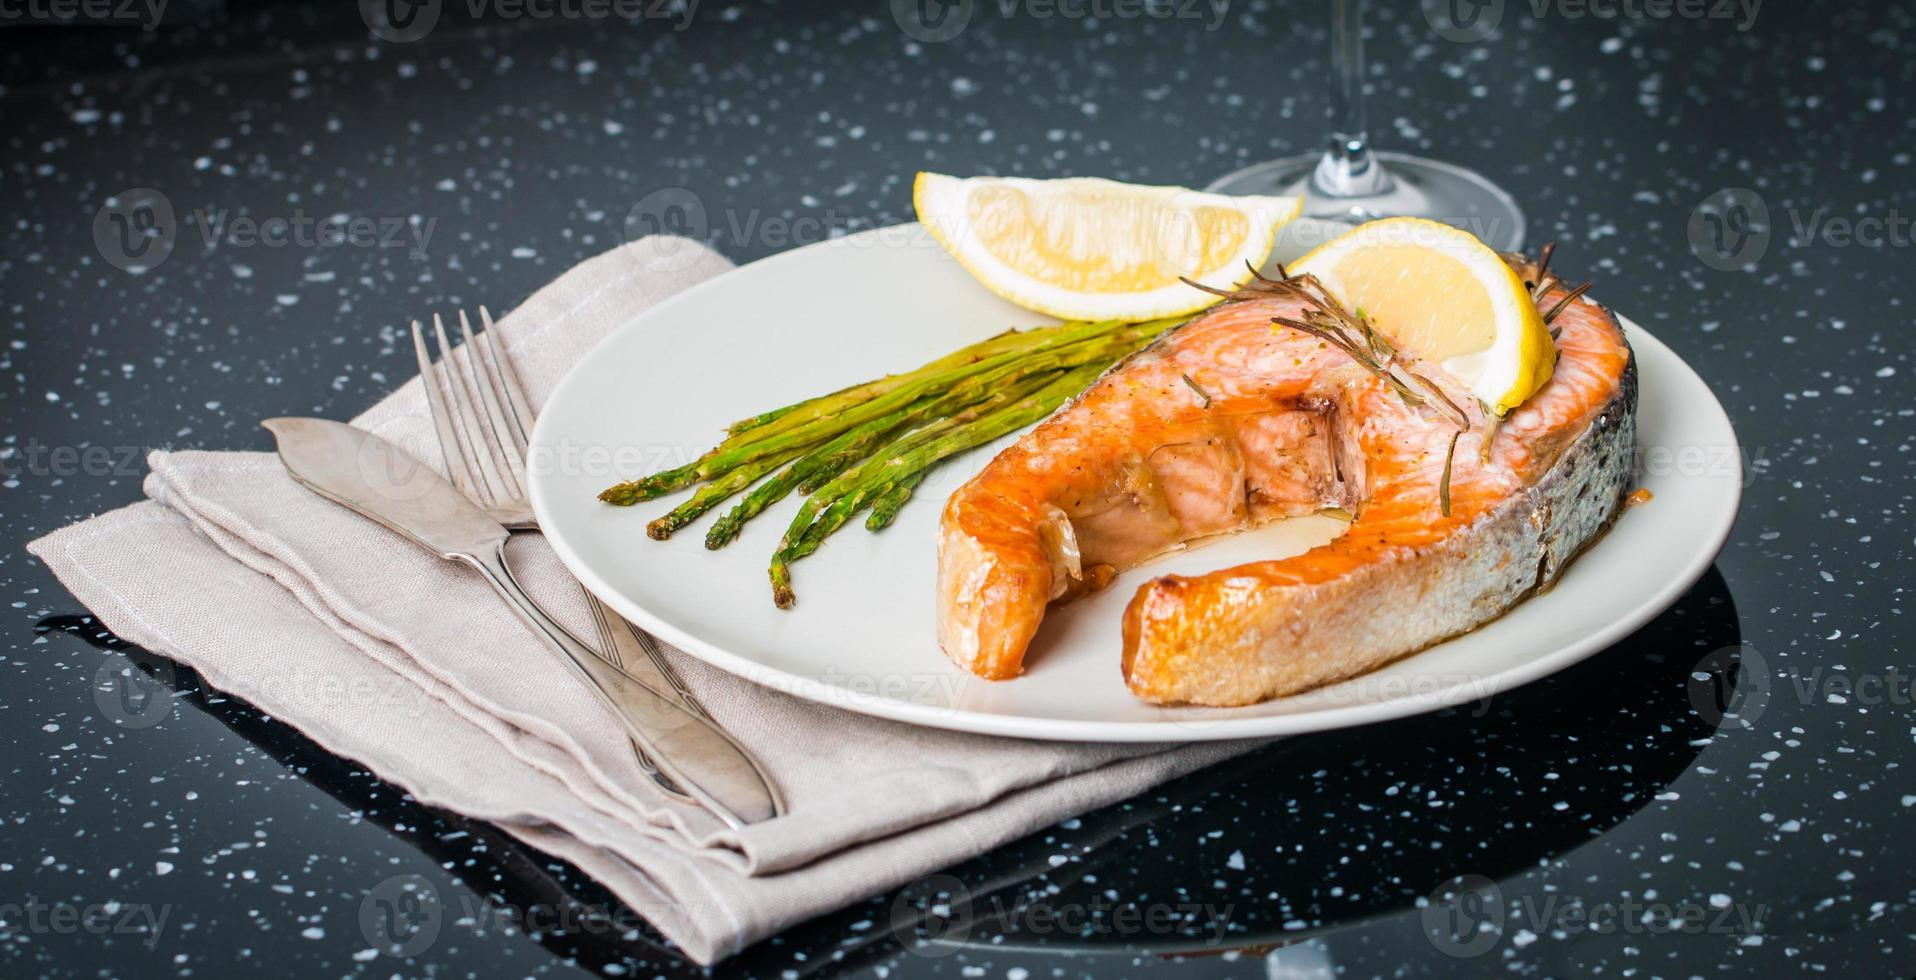 Grilled steak of salmon with vegetables and wine photo